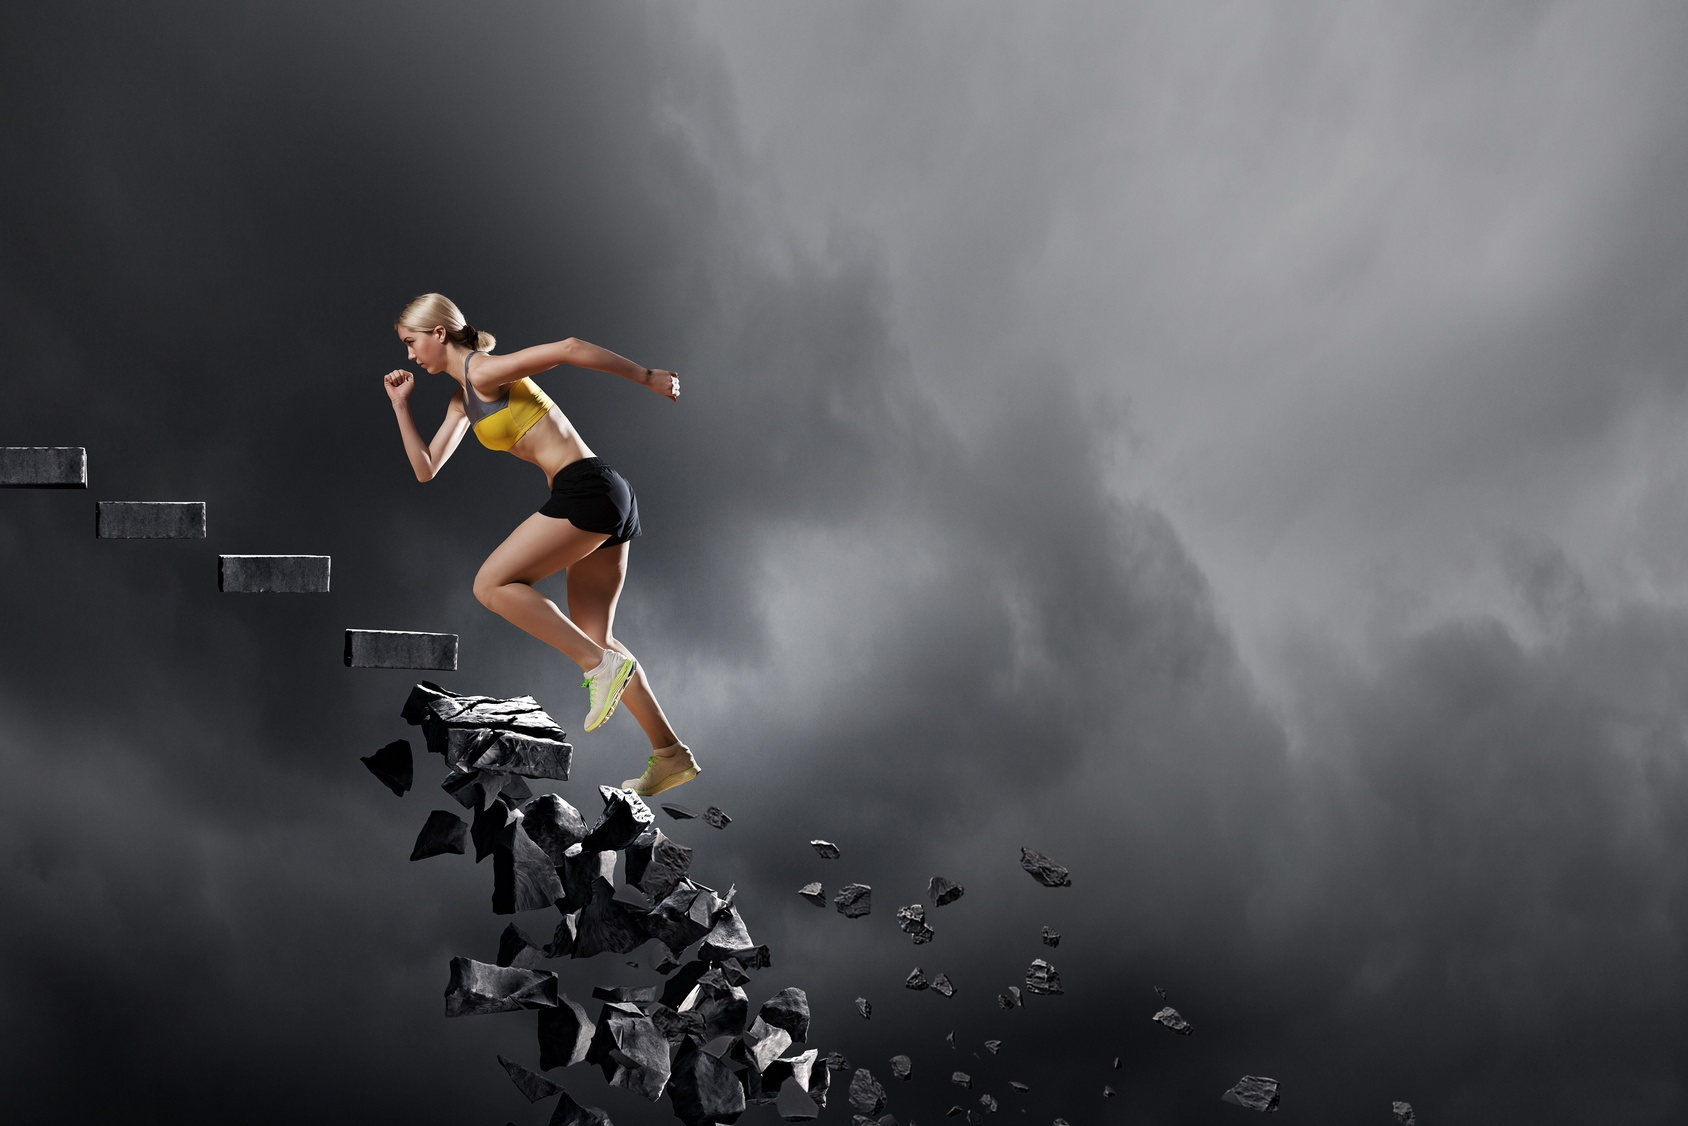 04b933717325 Sports woman overcoming challenges | Telecoms.com